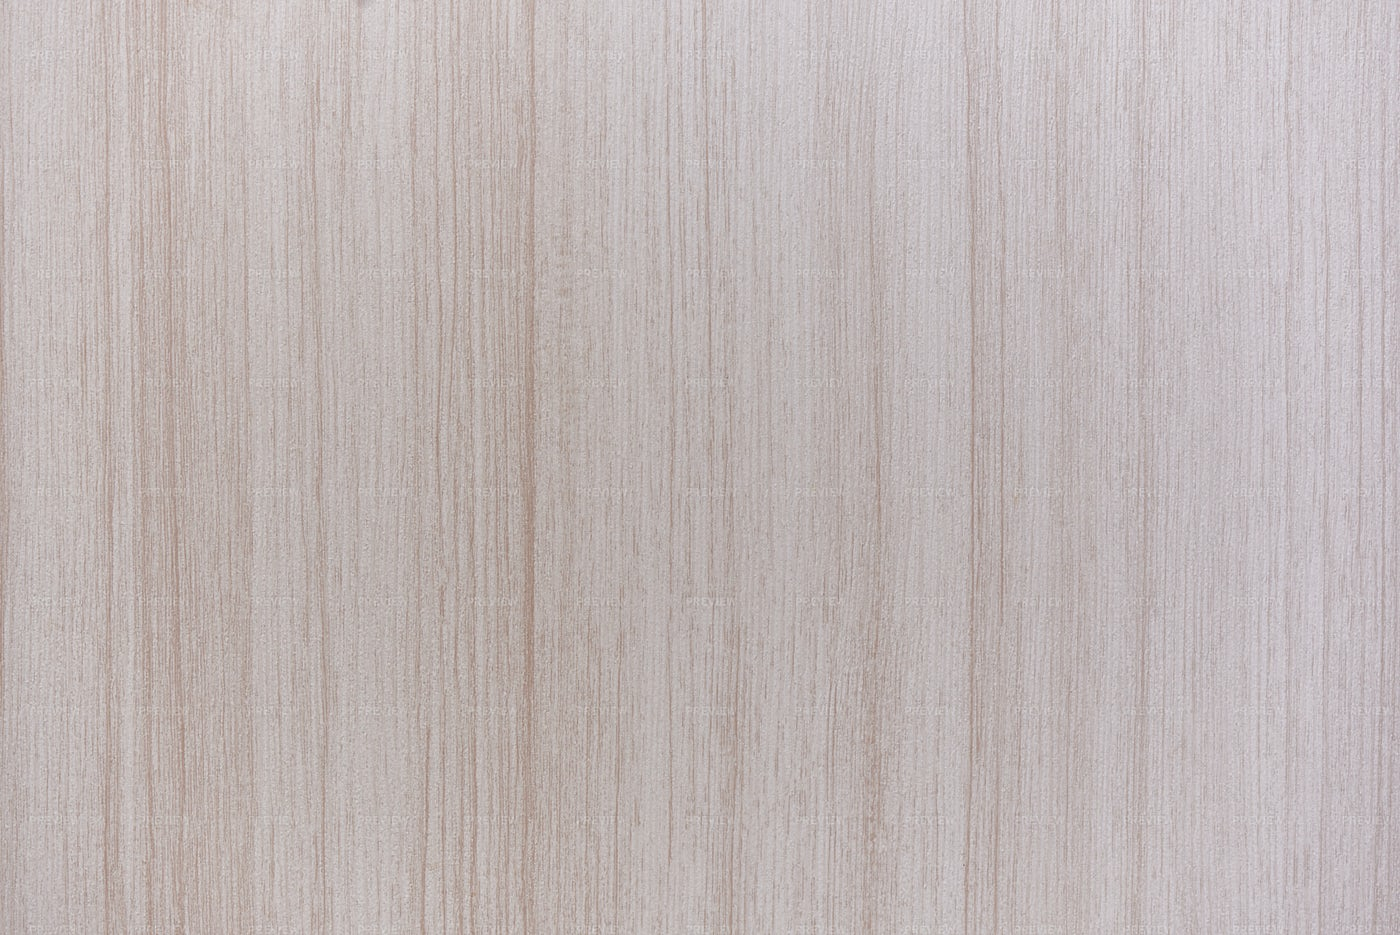 A Pale Wood Background: Stock Photos